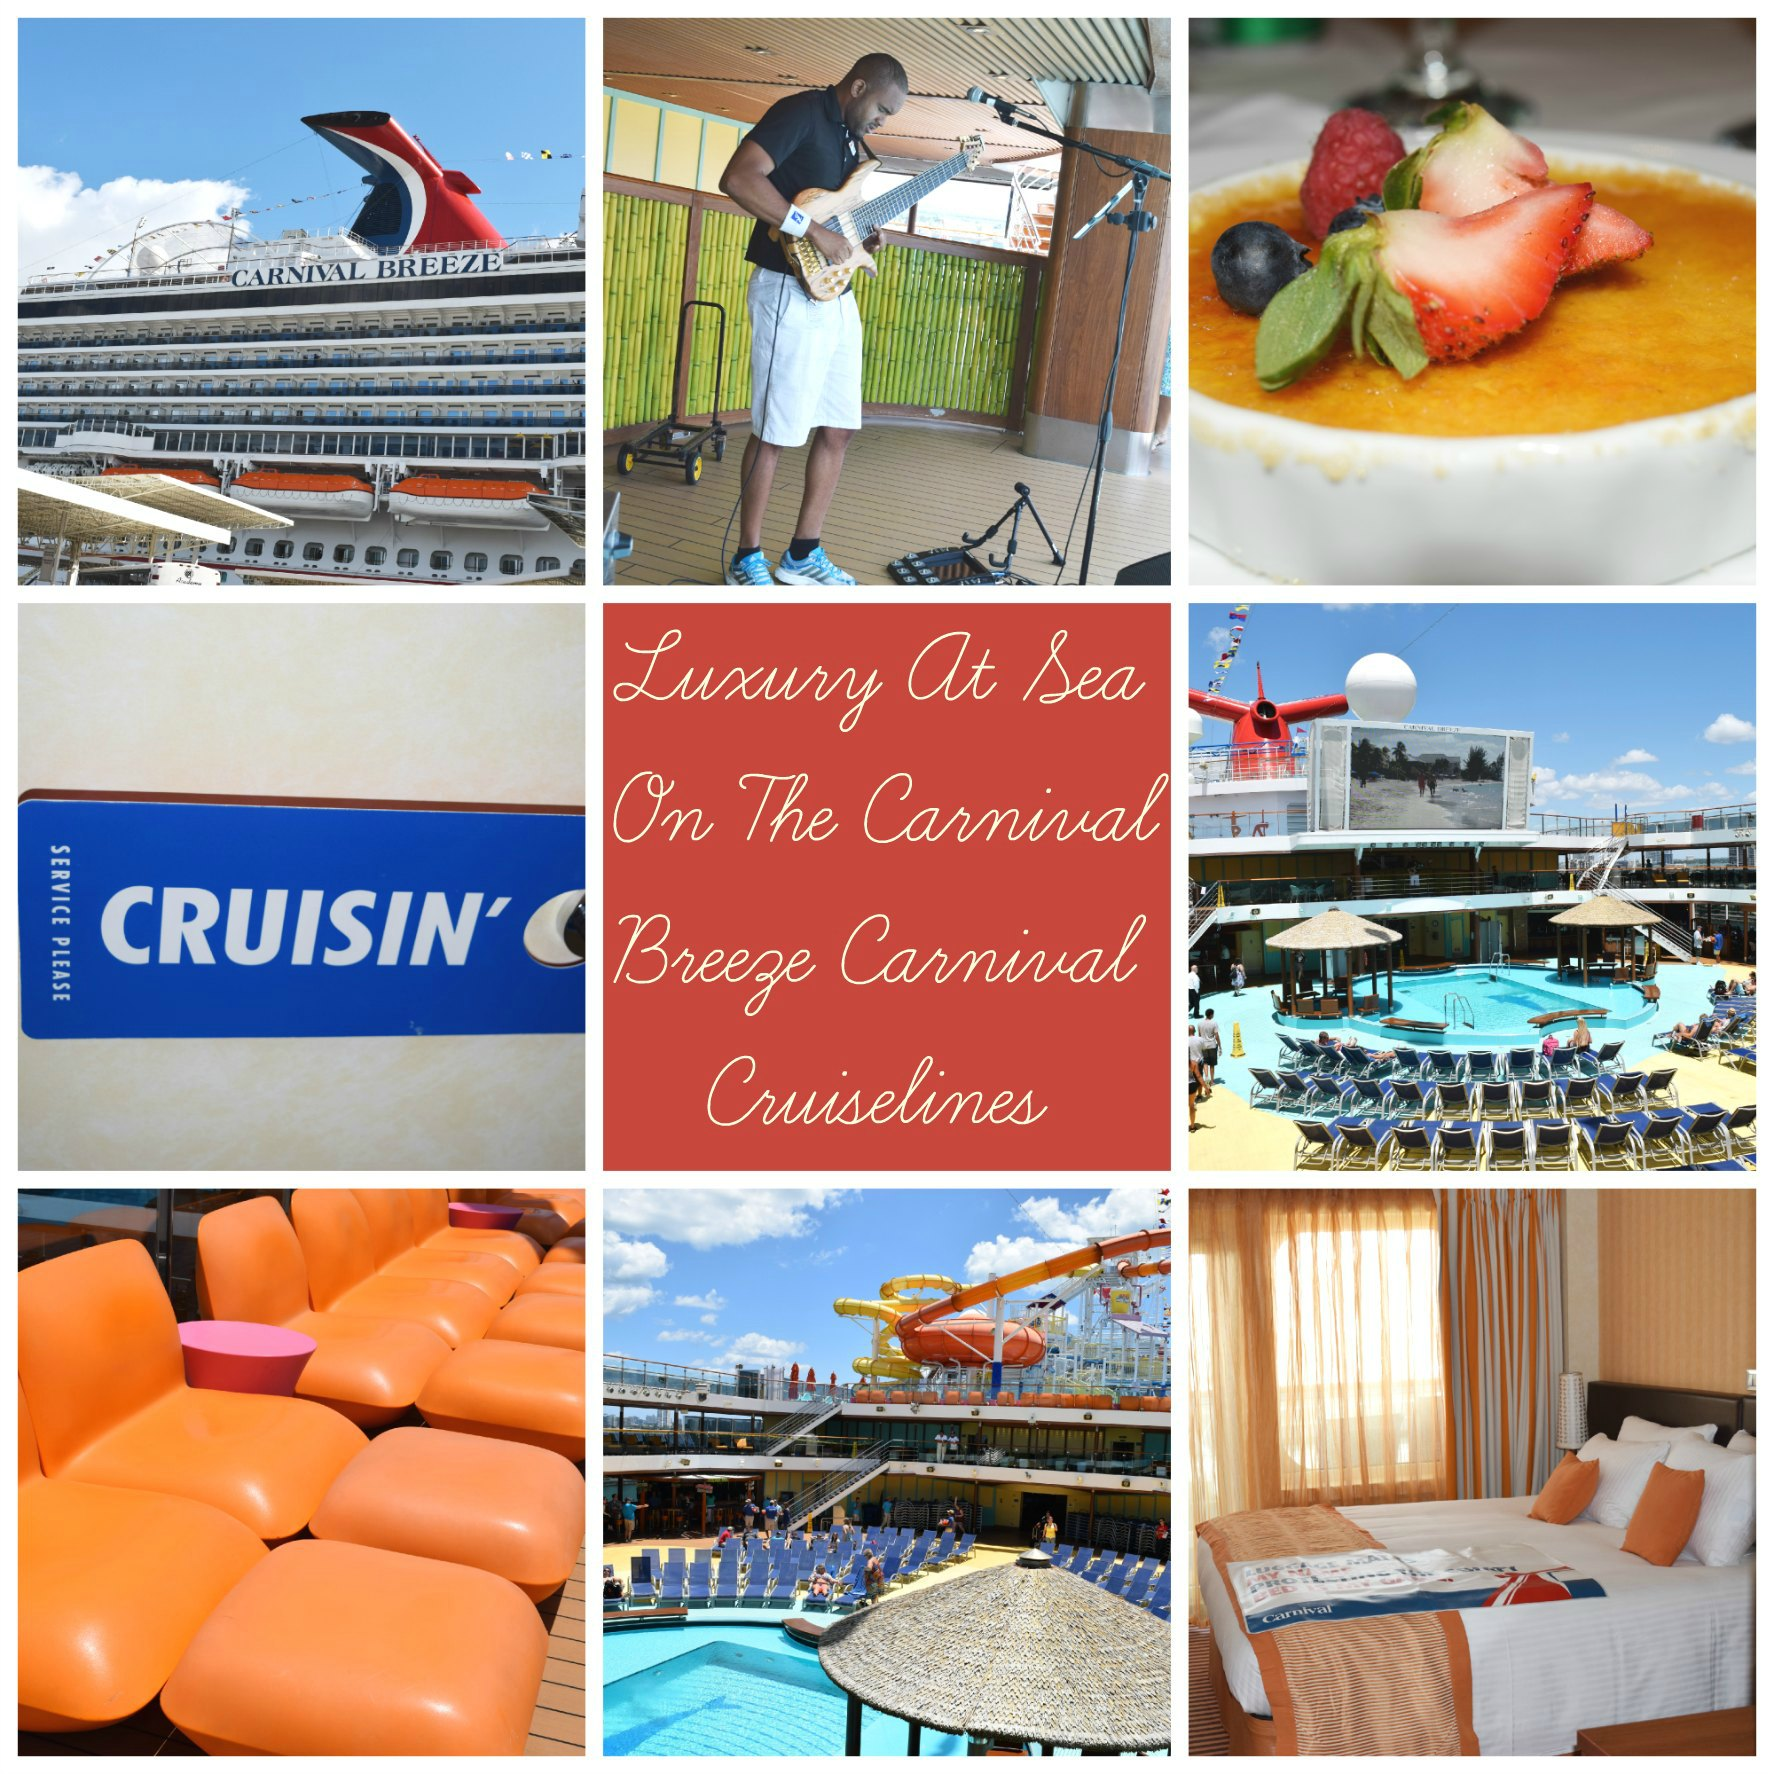 carnival cruise button a